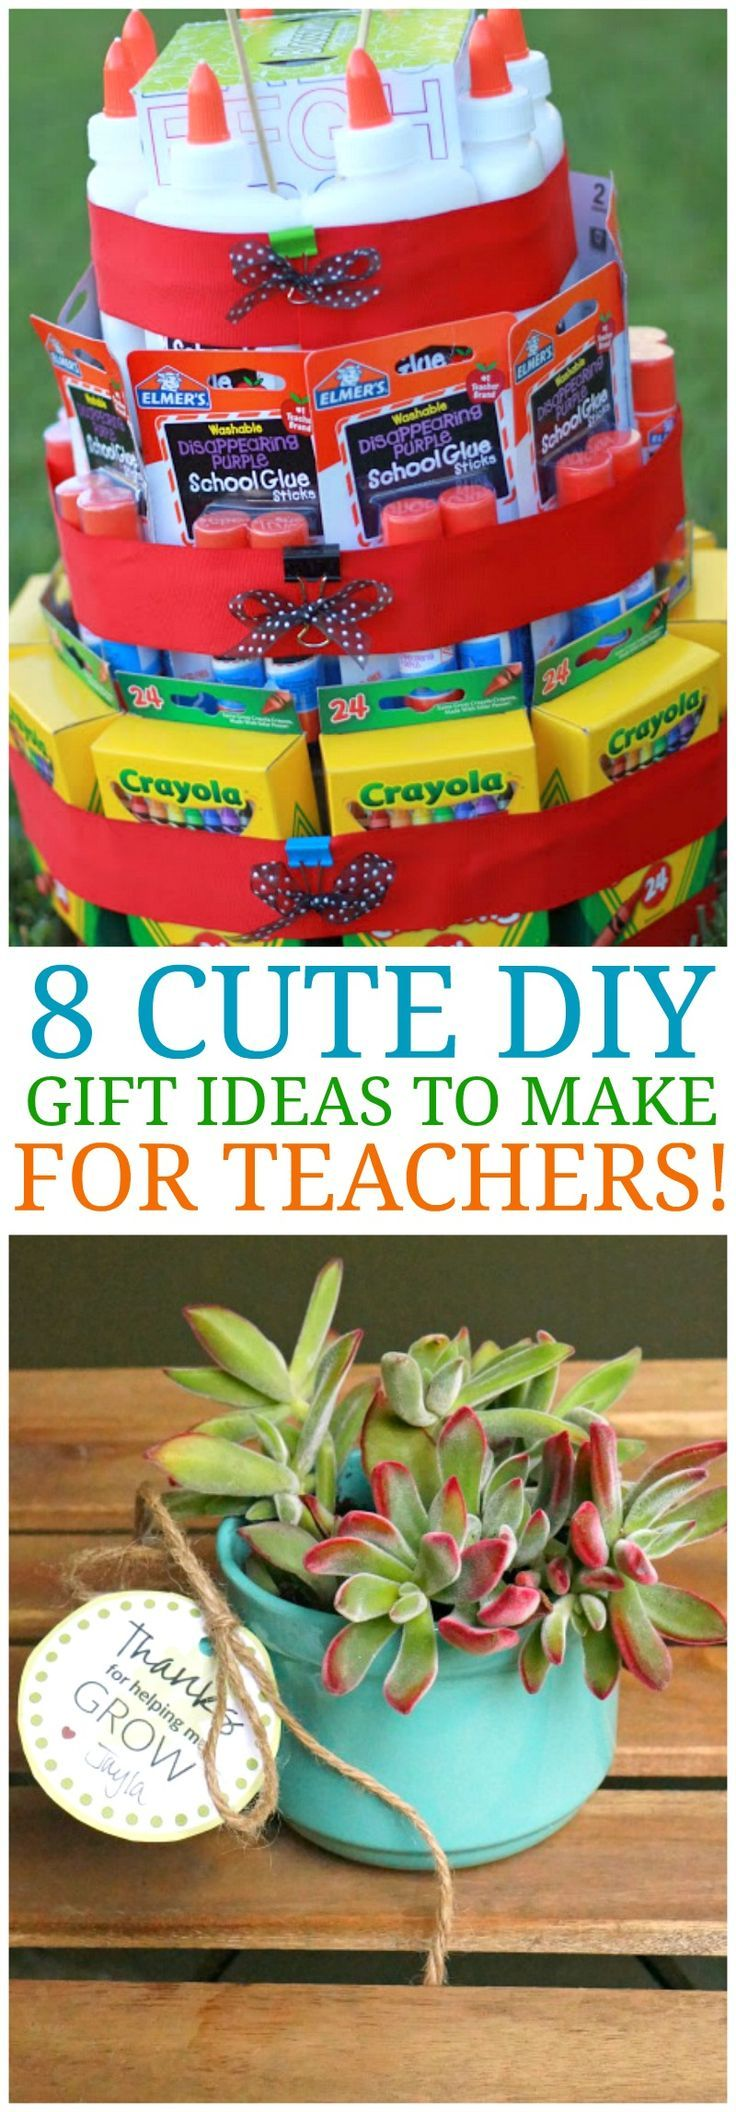 Best 25 homemade gifts for teachers ideas on pinterest diy 8 cute diy teacher appreciation gift ideas homemade gifts for teachers solutioingenieria Choice Image